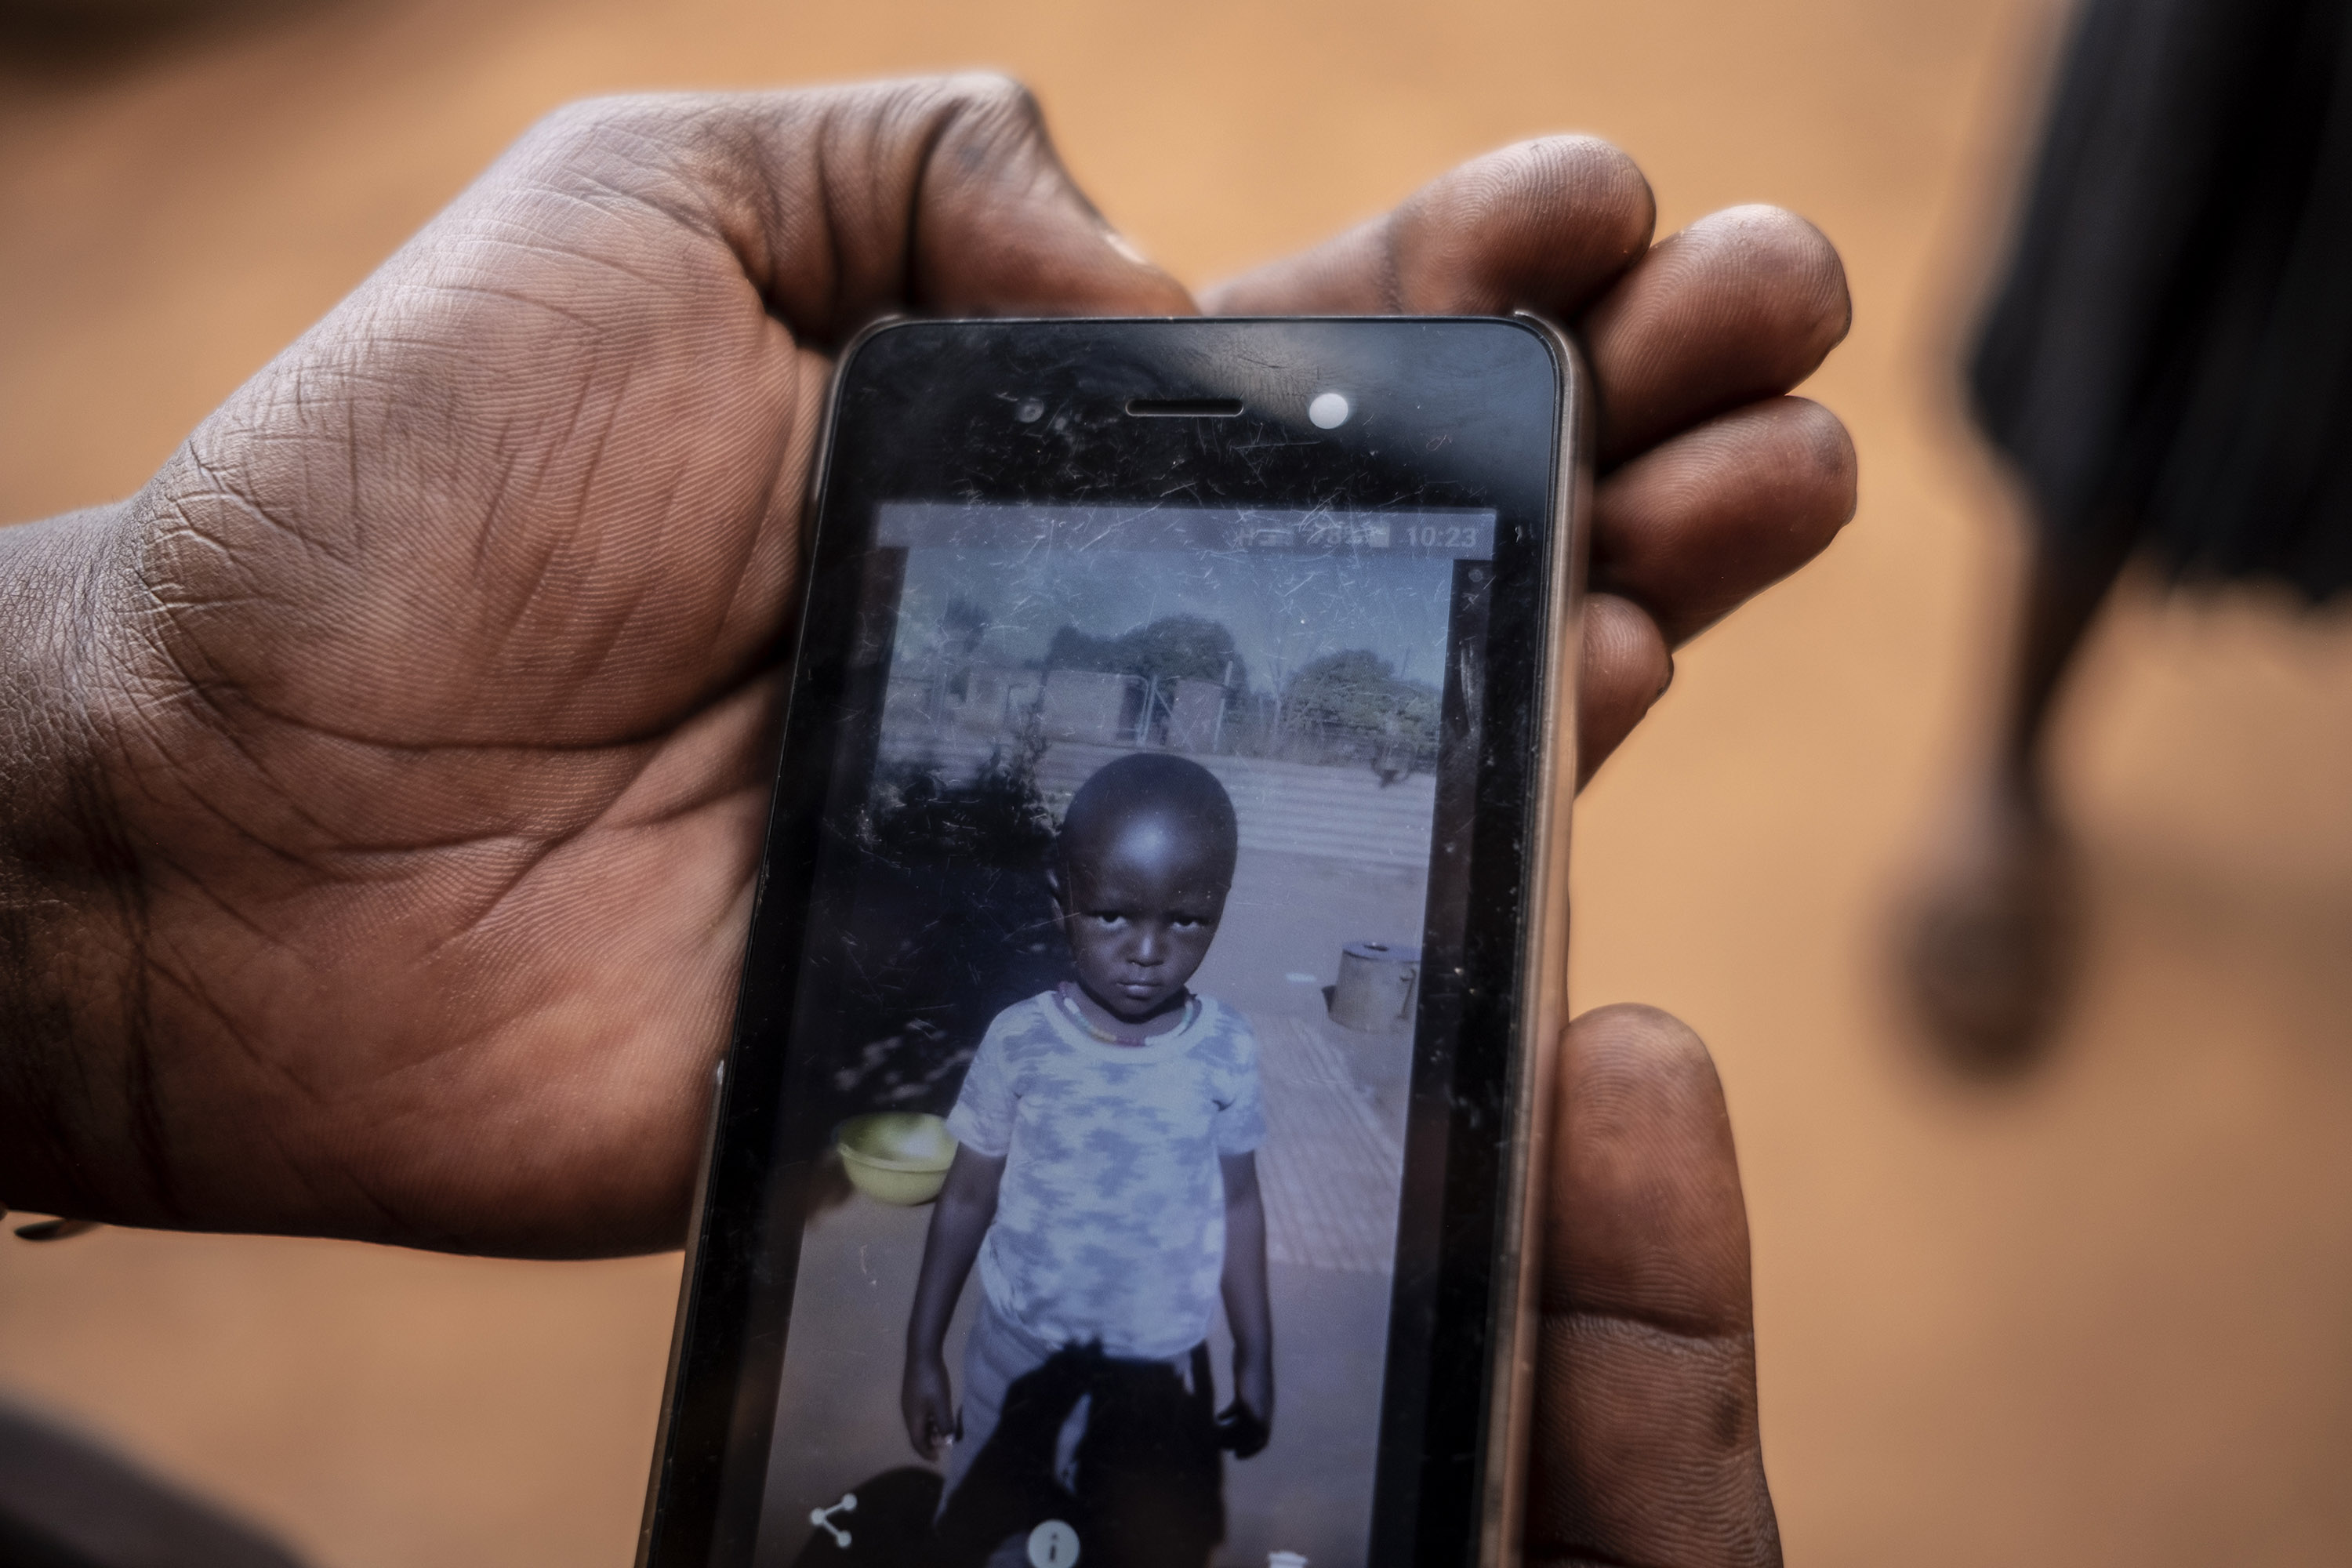 22 August 2019: Velly Mmola's son, two-year-old Katekani Vicky Mmola, in the cell phone photograph, was unconscious minutes after having a drip administered at the Dr CN Phatudi Hospital. He died shortly thereafter.